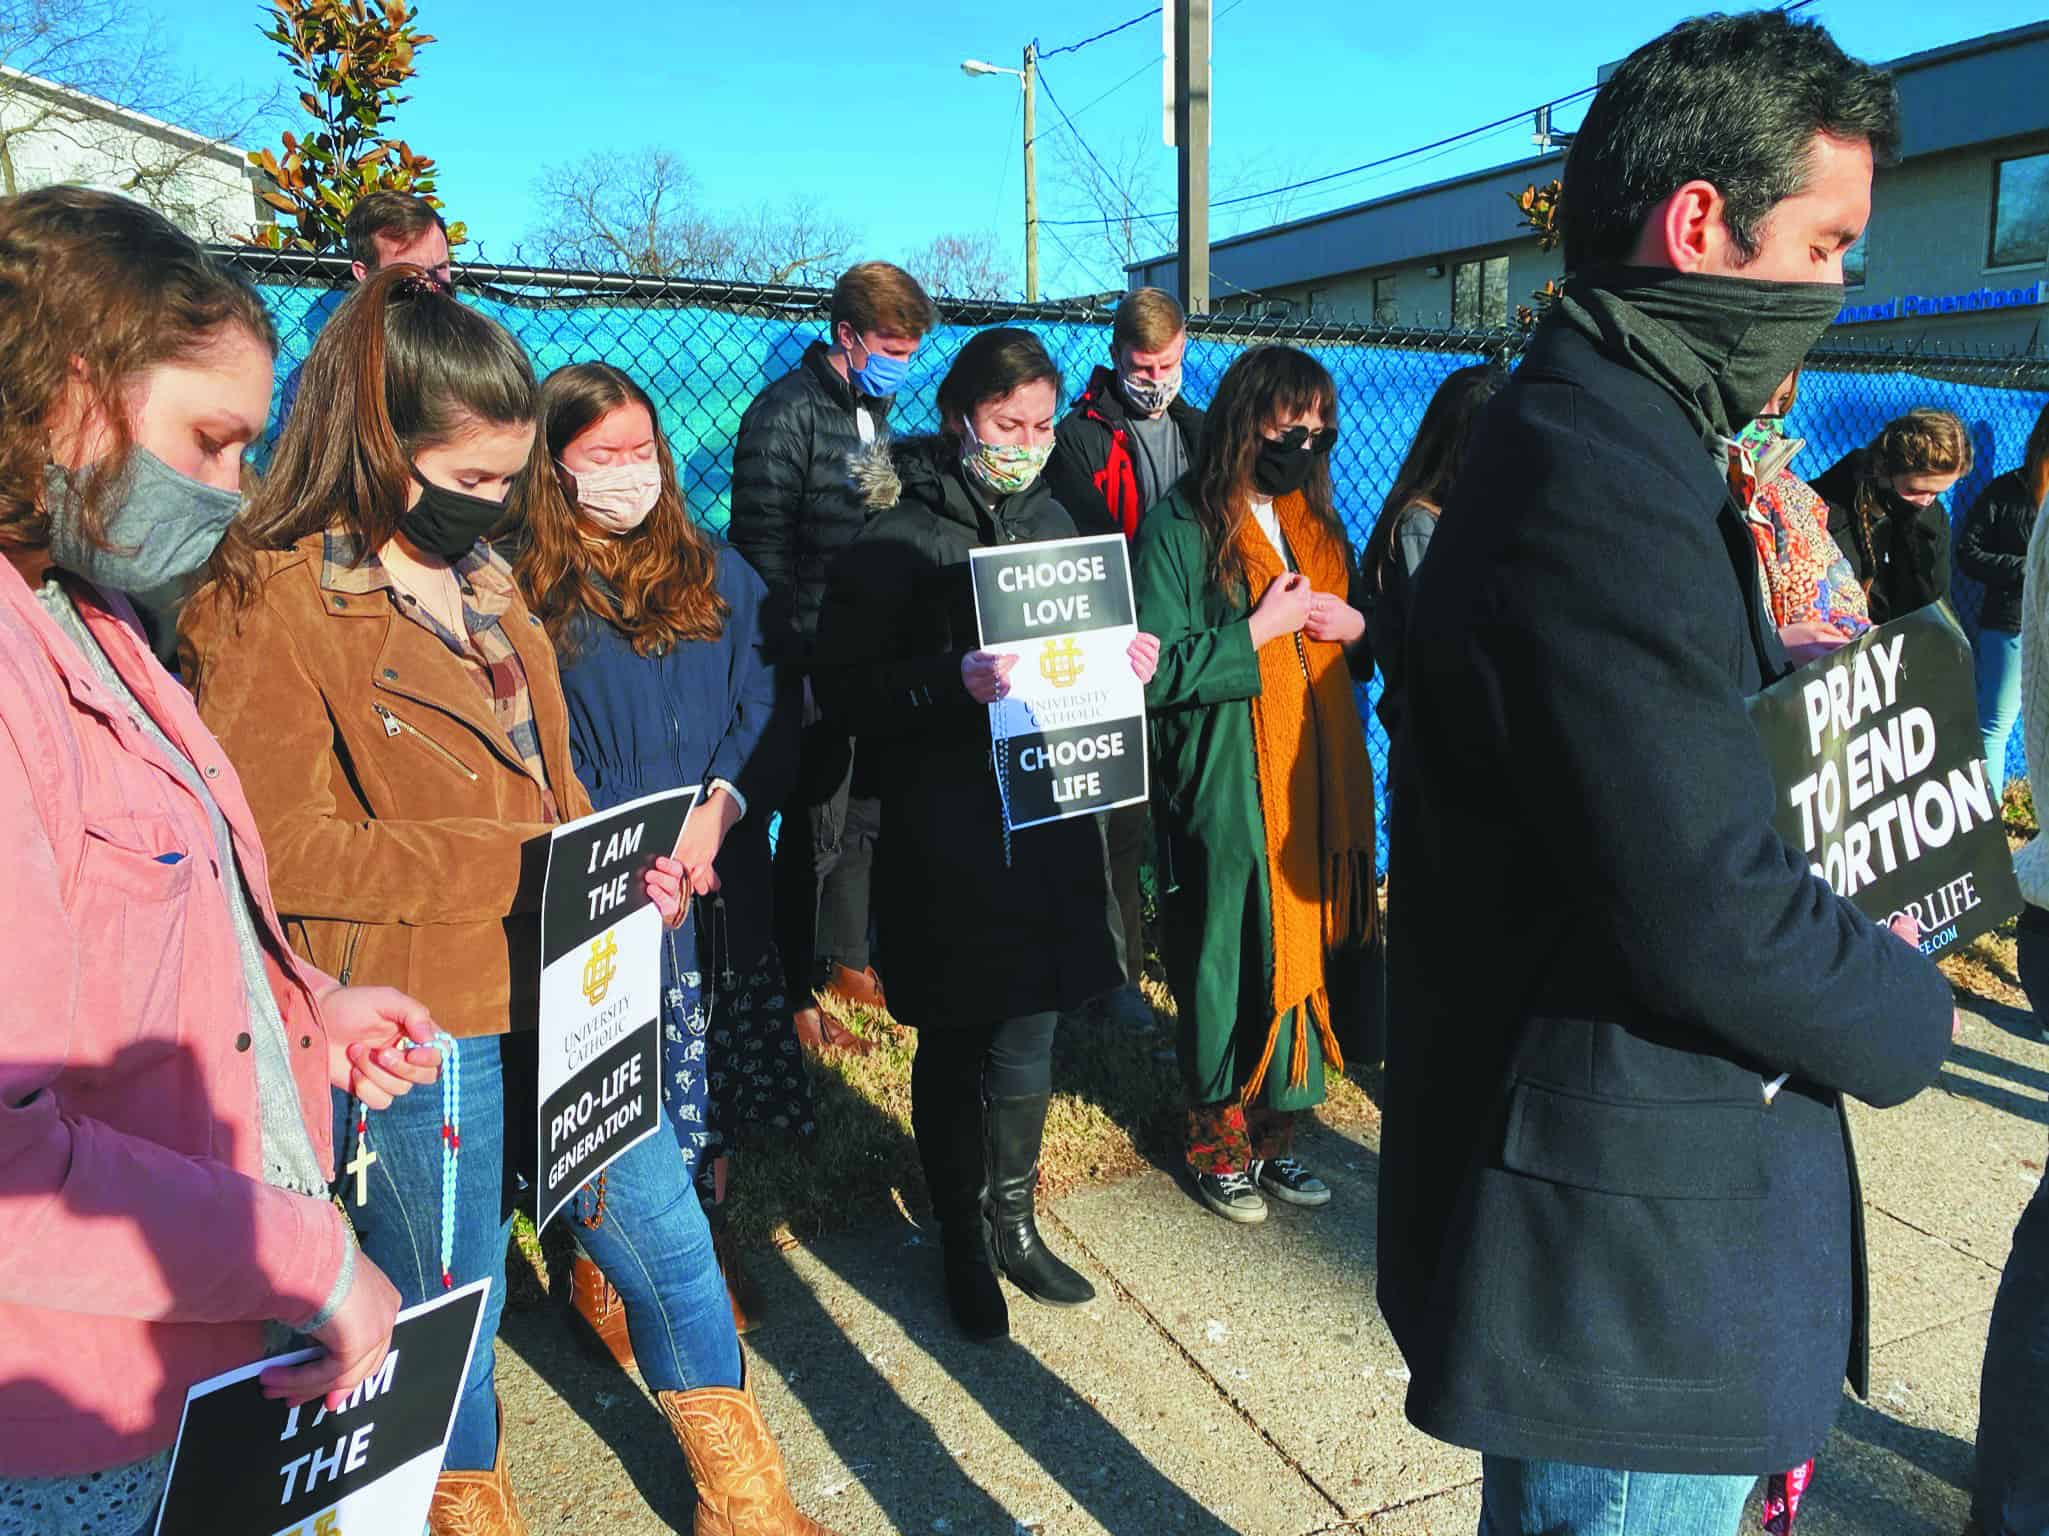 Youth make local pilgrimage for life